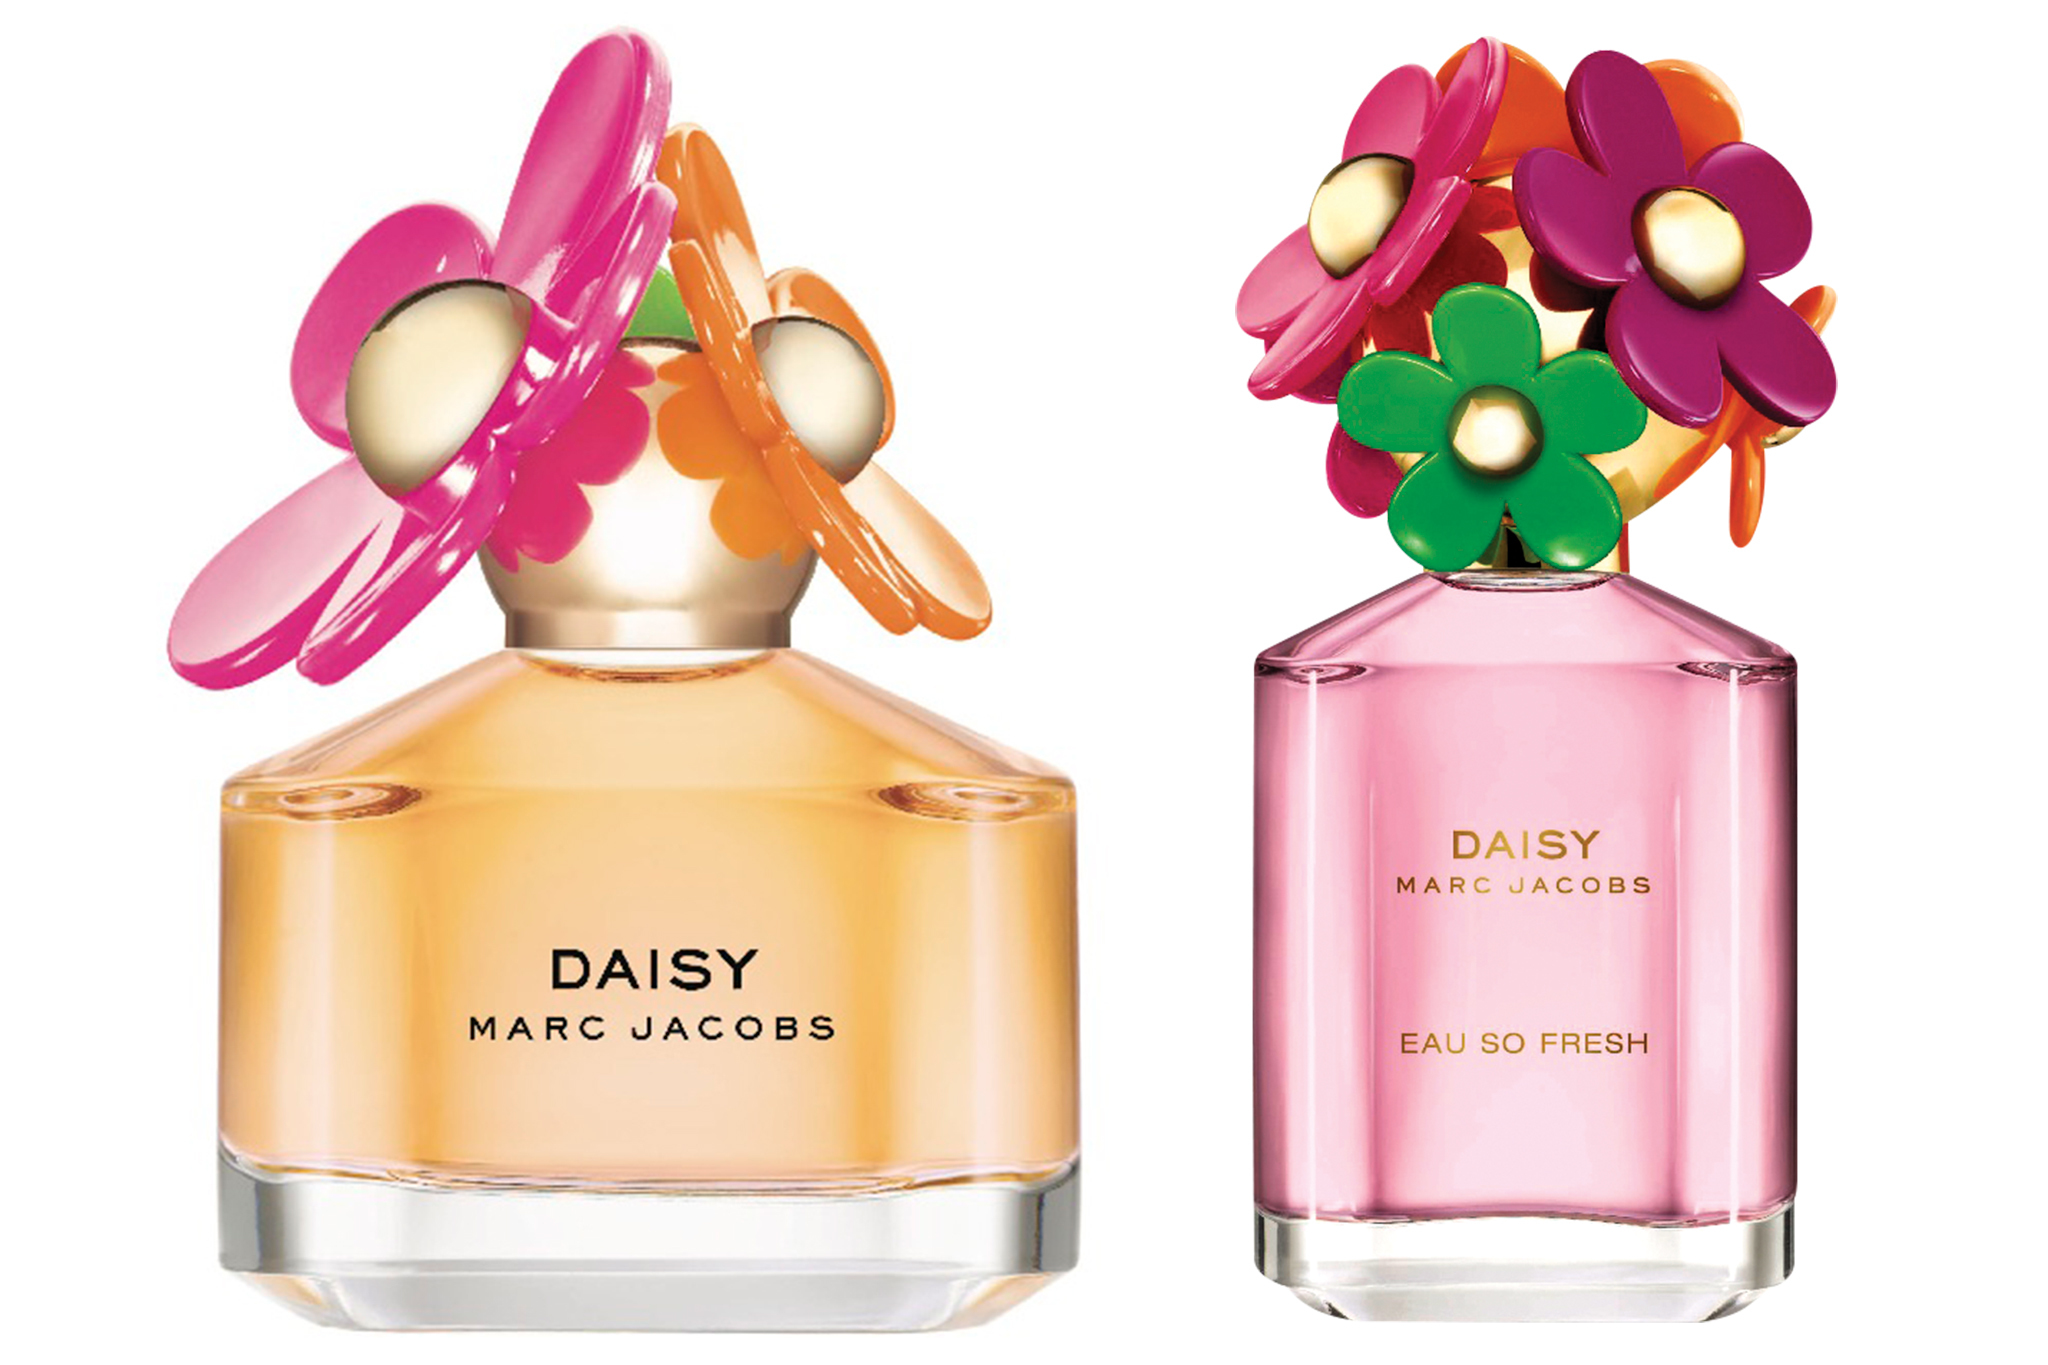 New floral fragrances for Mother's Day (2013)